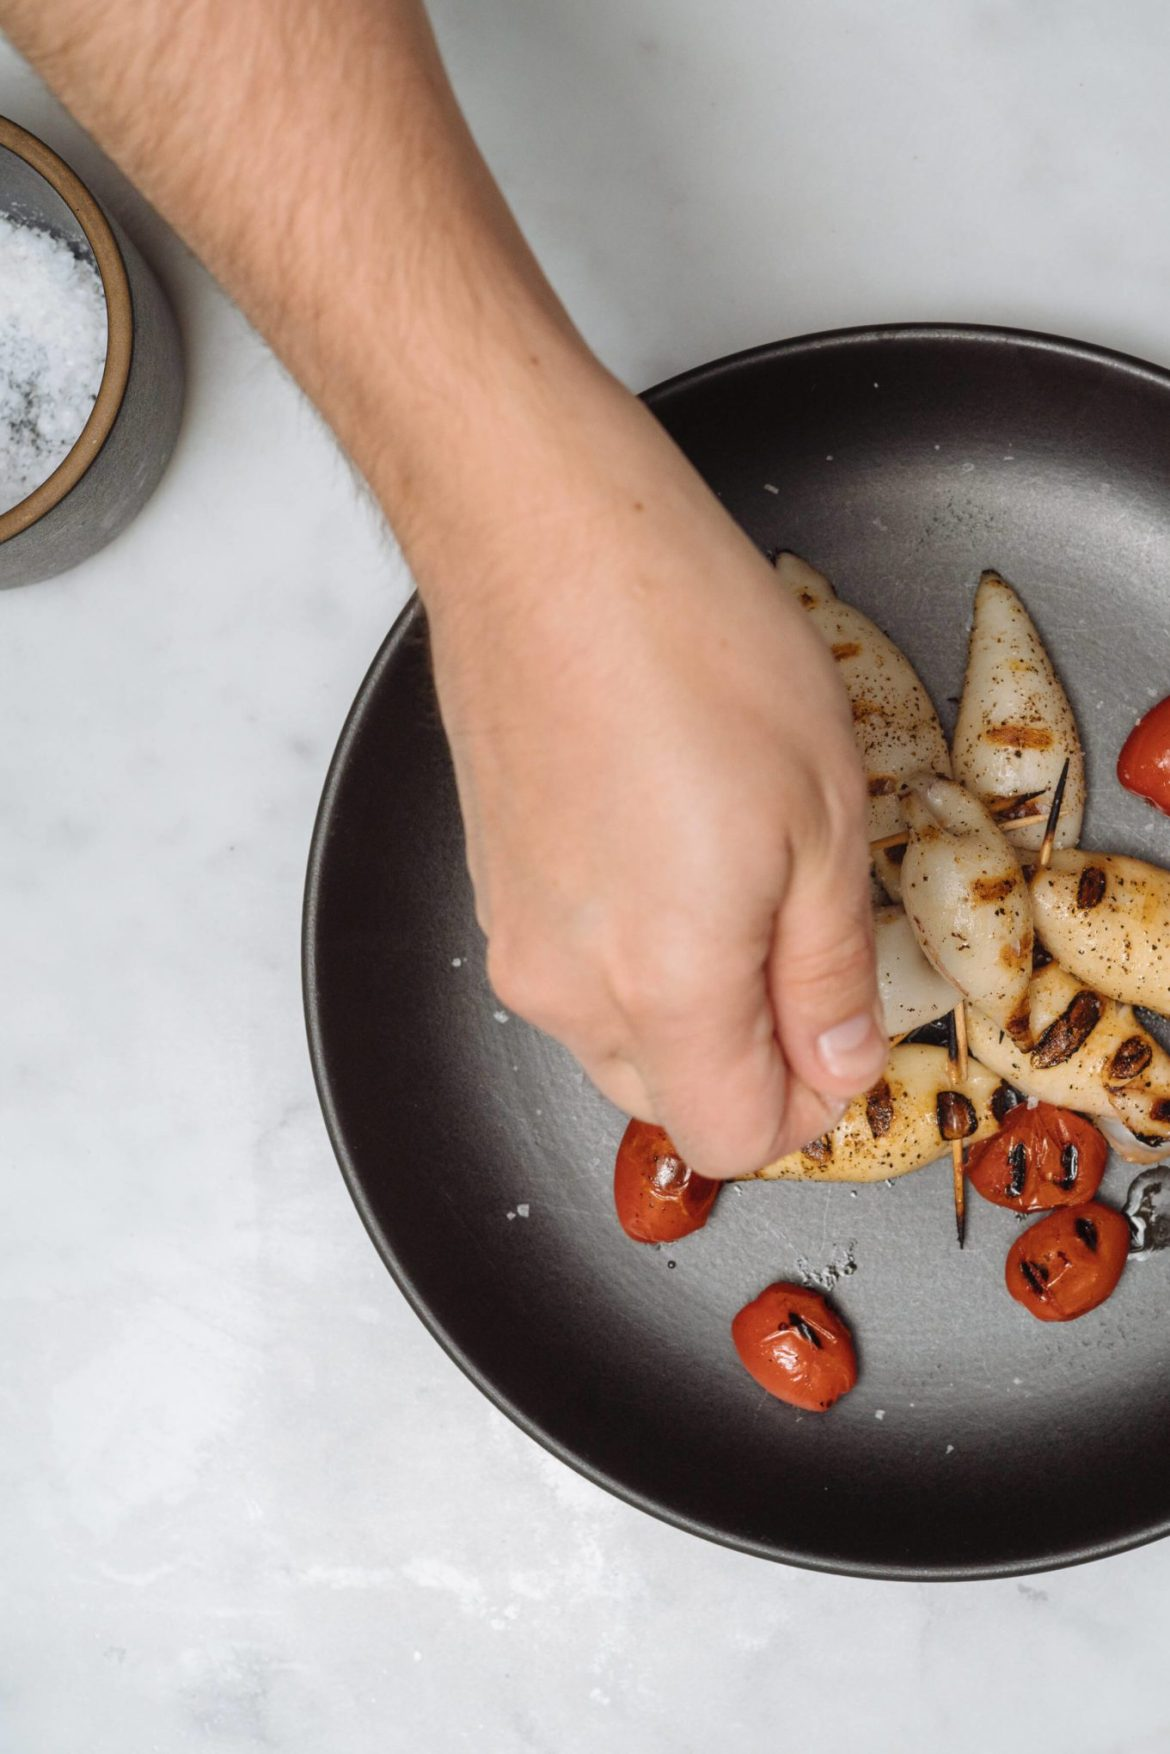 Topping our stuffed squid with salt